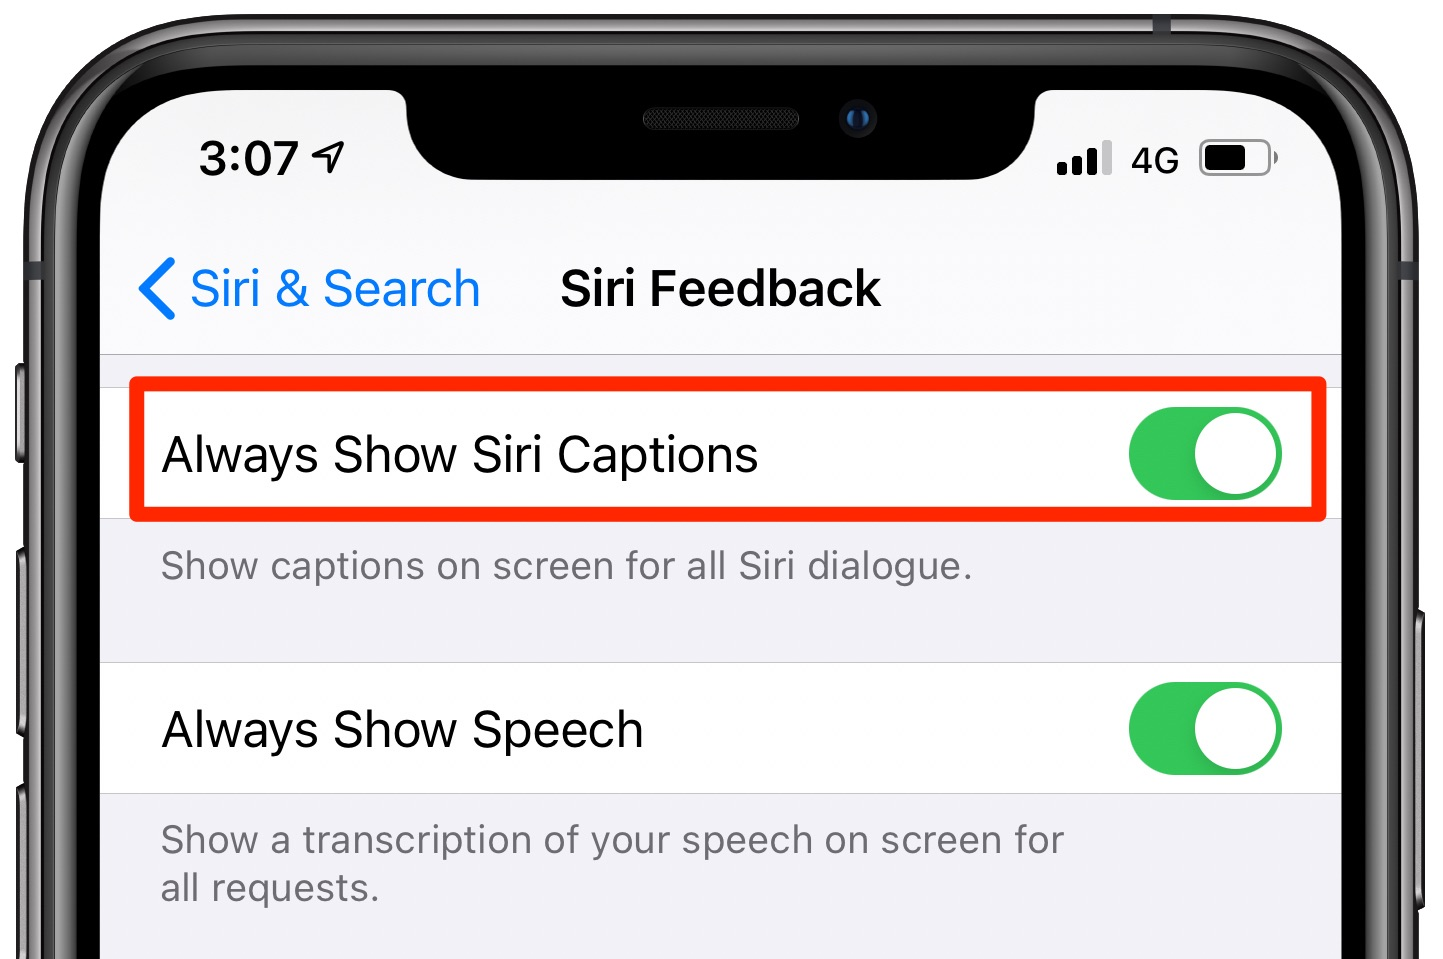 The Always Show Siri captions feature enabled in Siri settings